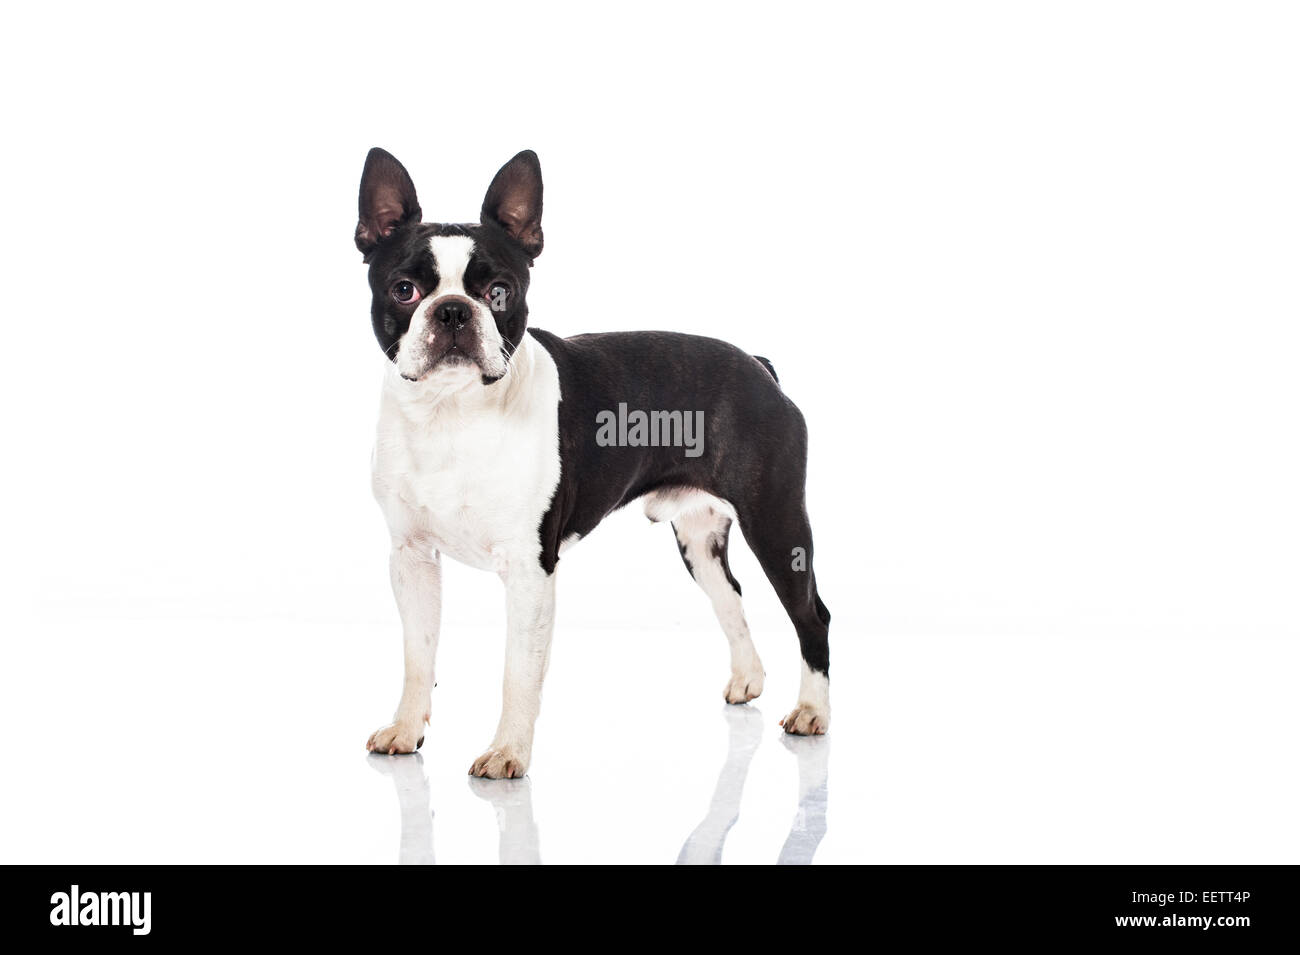 boston terrier stock photos u0026 boston terrier stock images alamy